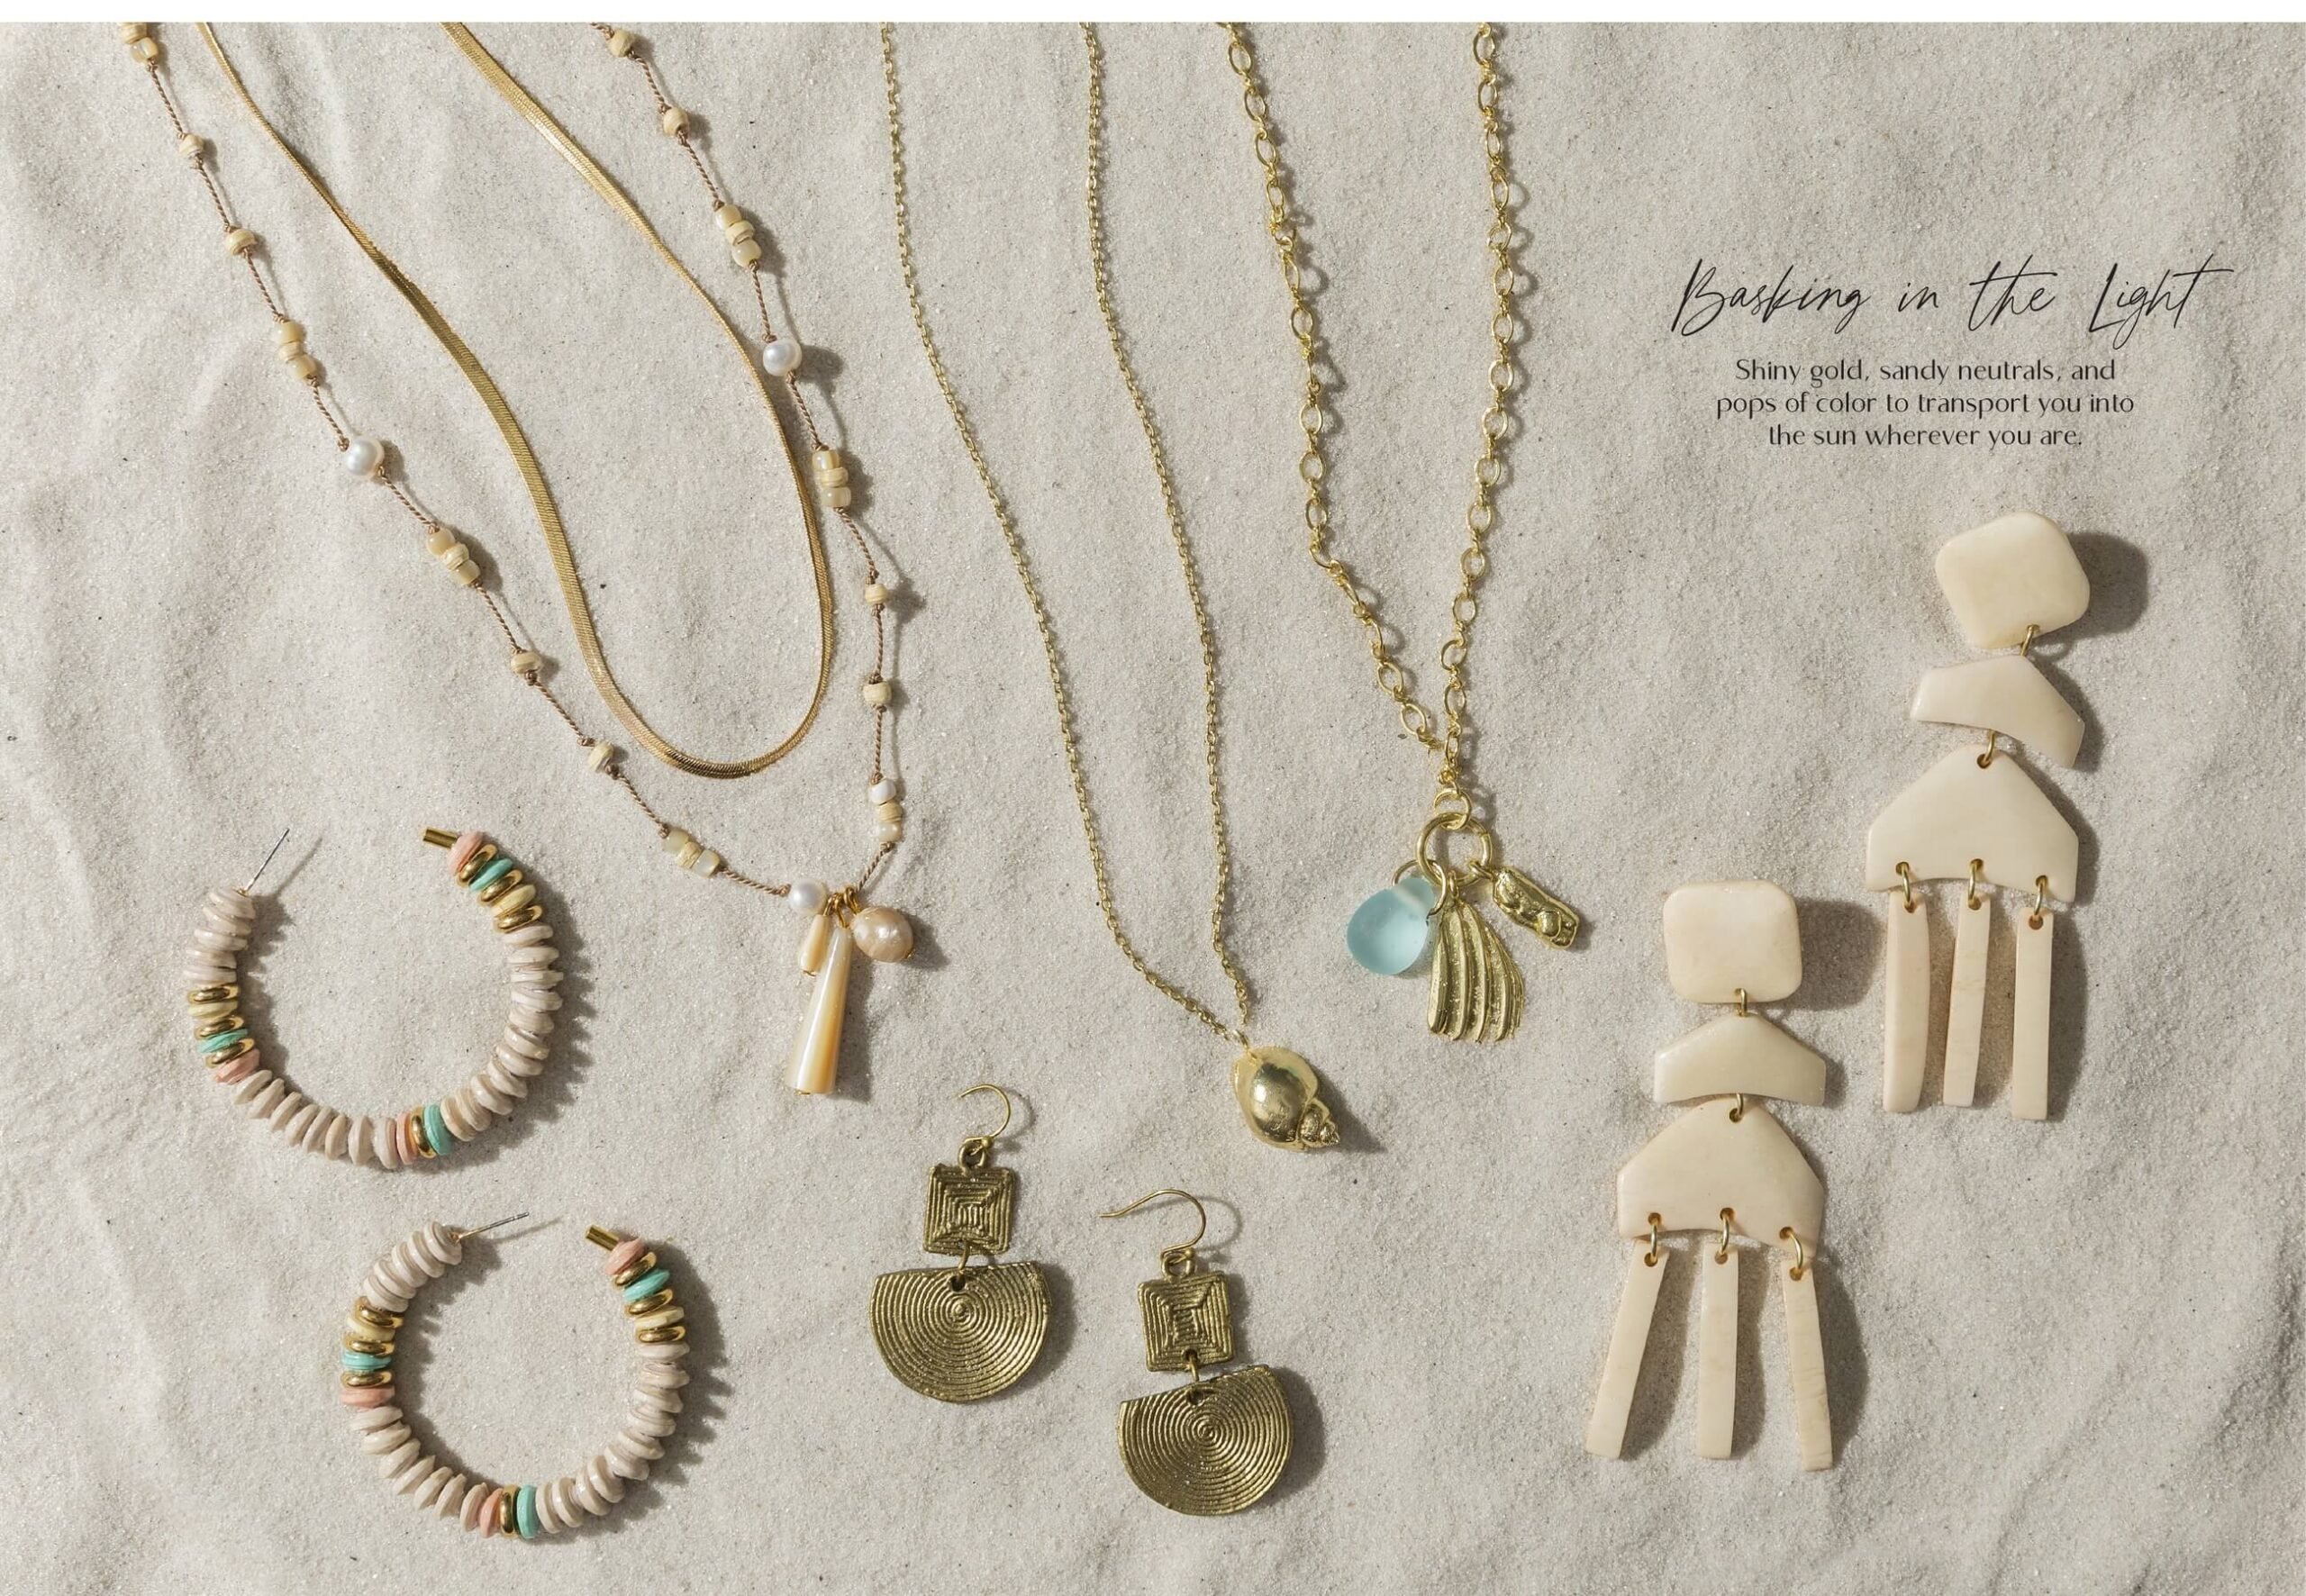 Mother's Day Unique Handmade Gifts by handcrafted Artisans from around the world. Great ideas for any mama's in your life with Noonday Collection and Annie Johnson | Design Love Life.